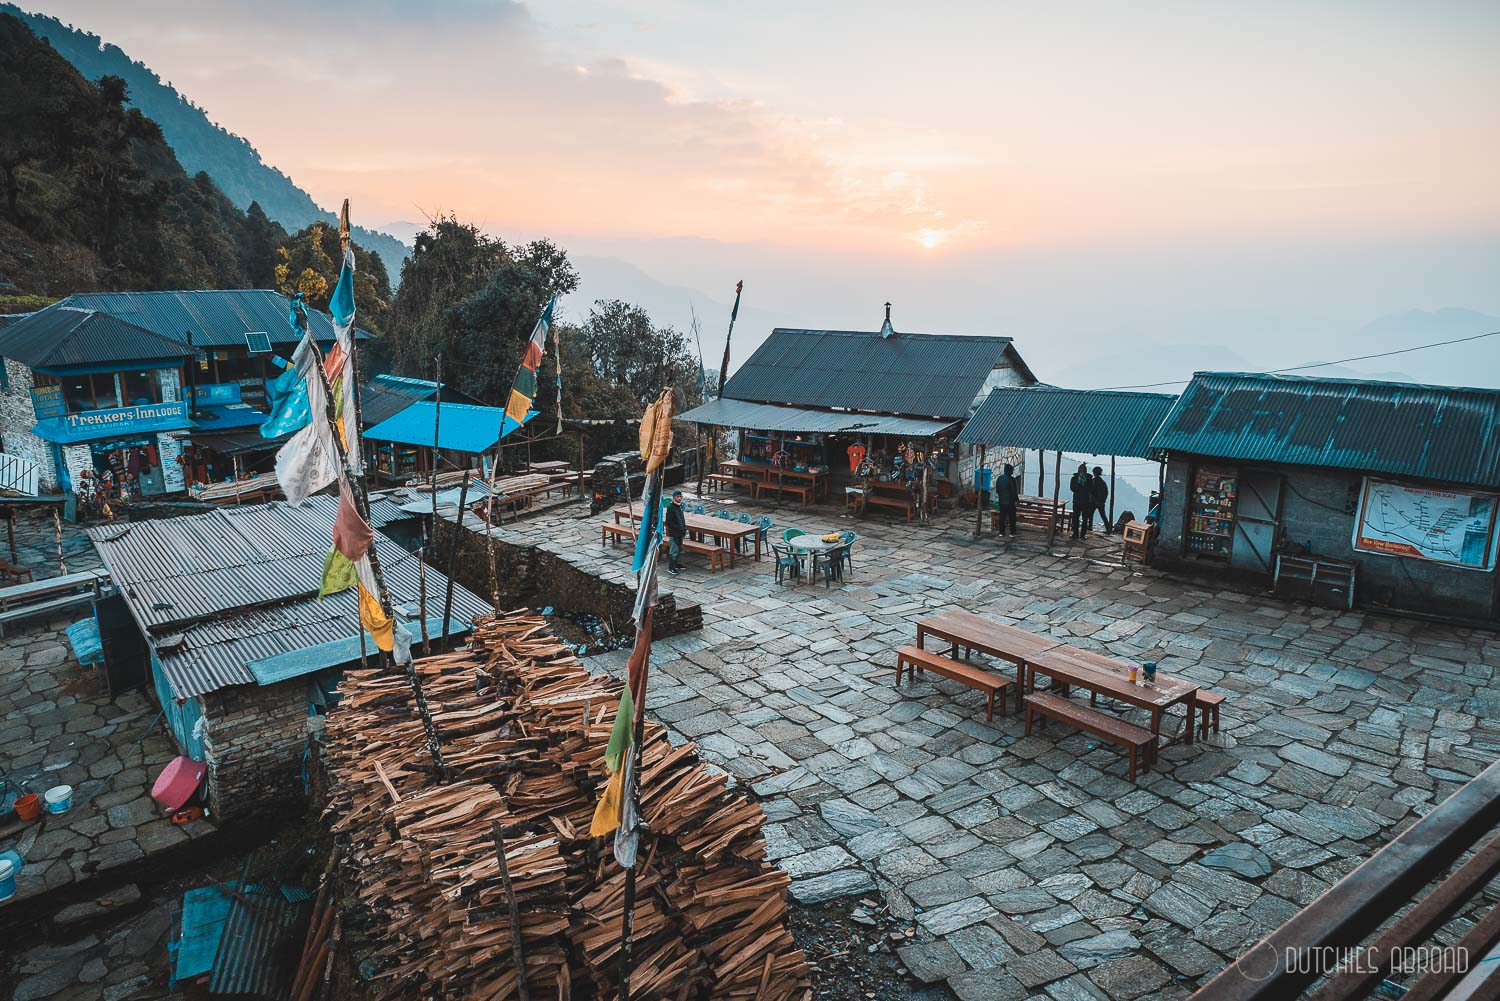 A great place to stay during the Mardi Himal trek